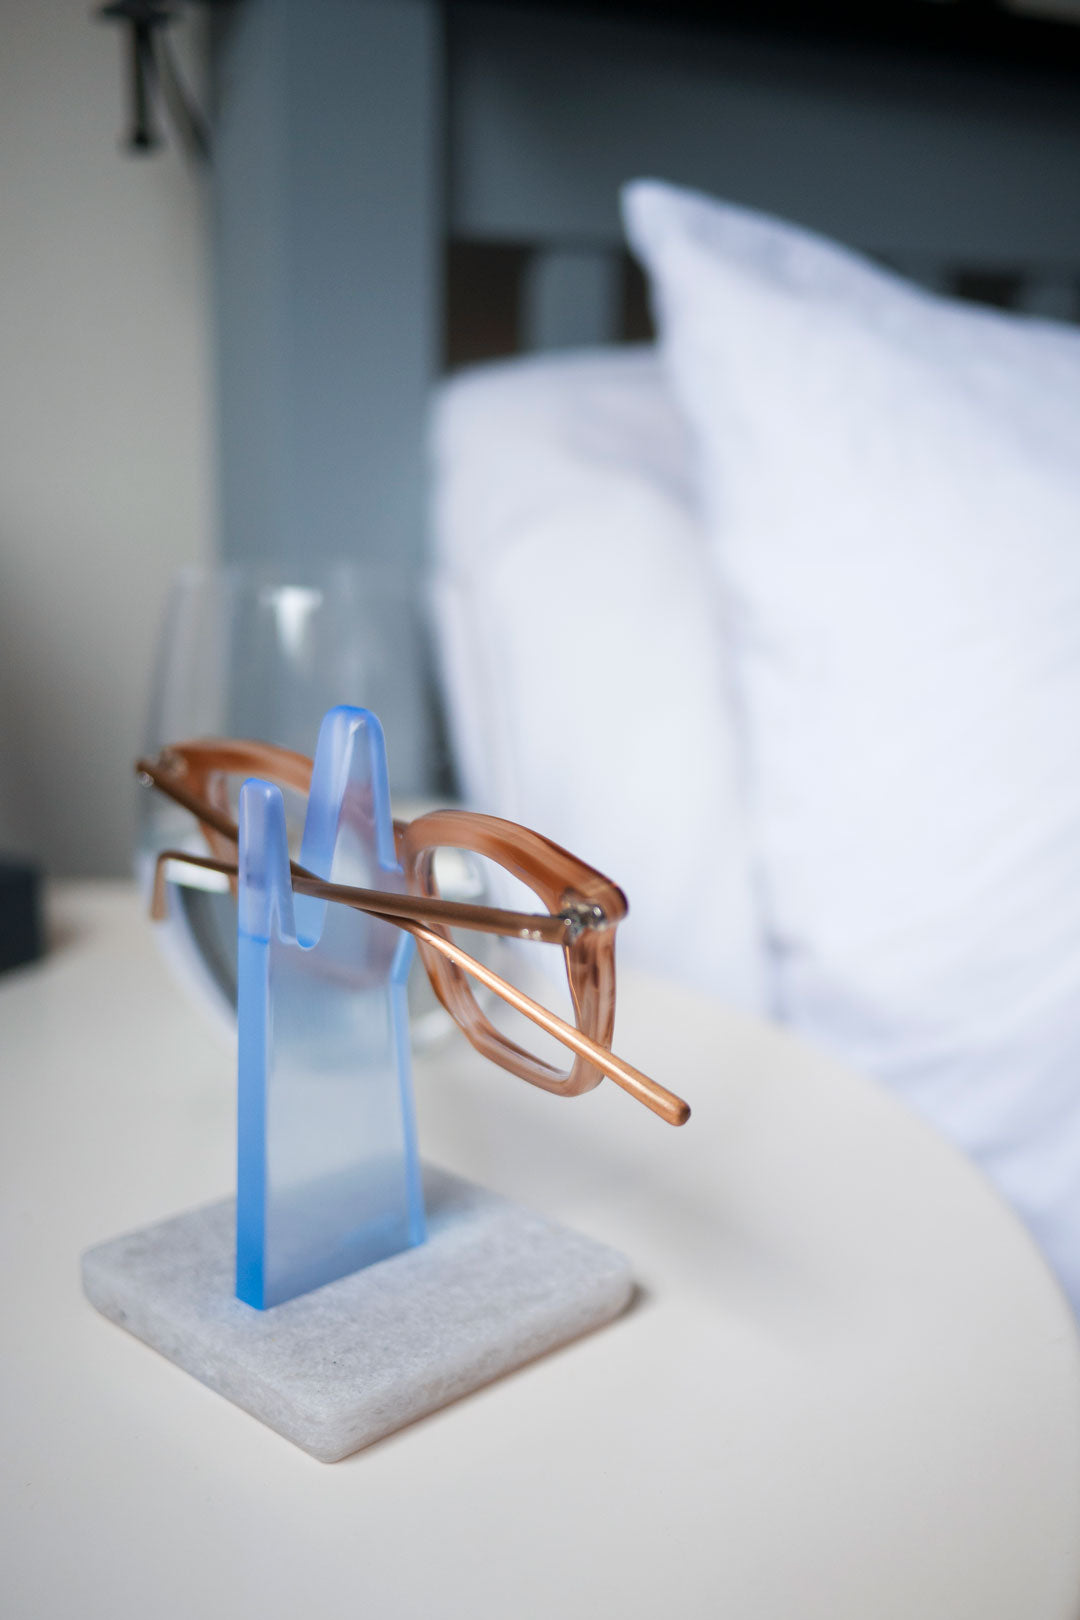 Grey and blue spectacle holder on bedside table